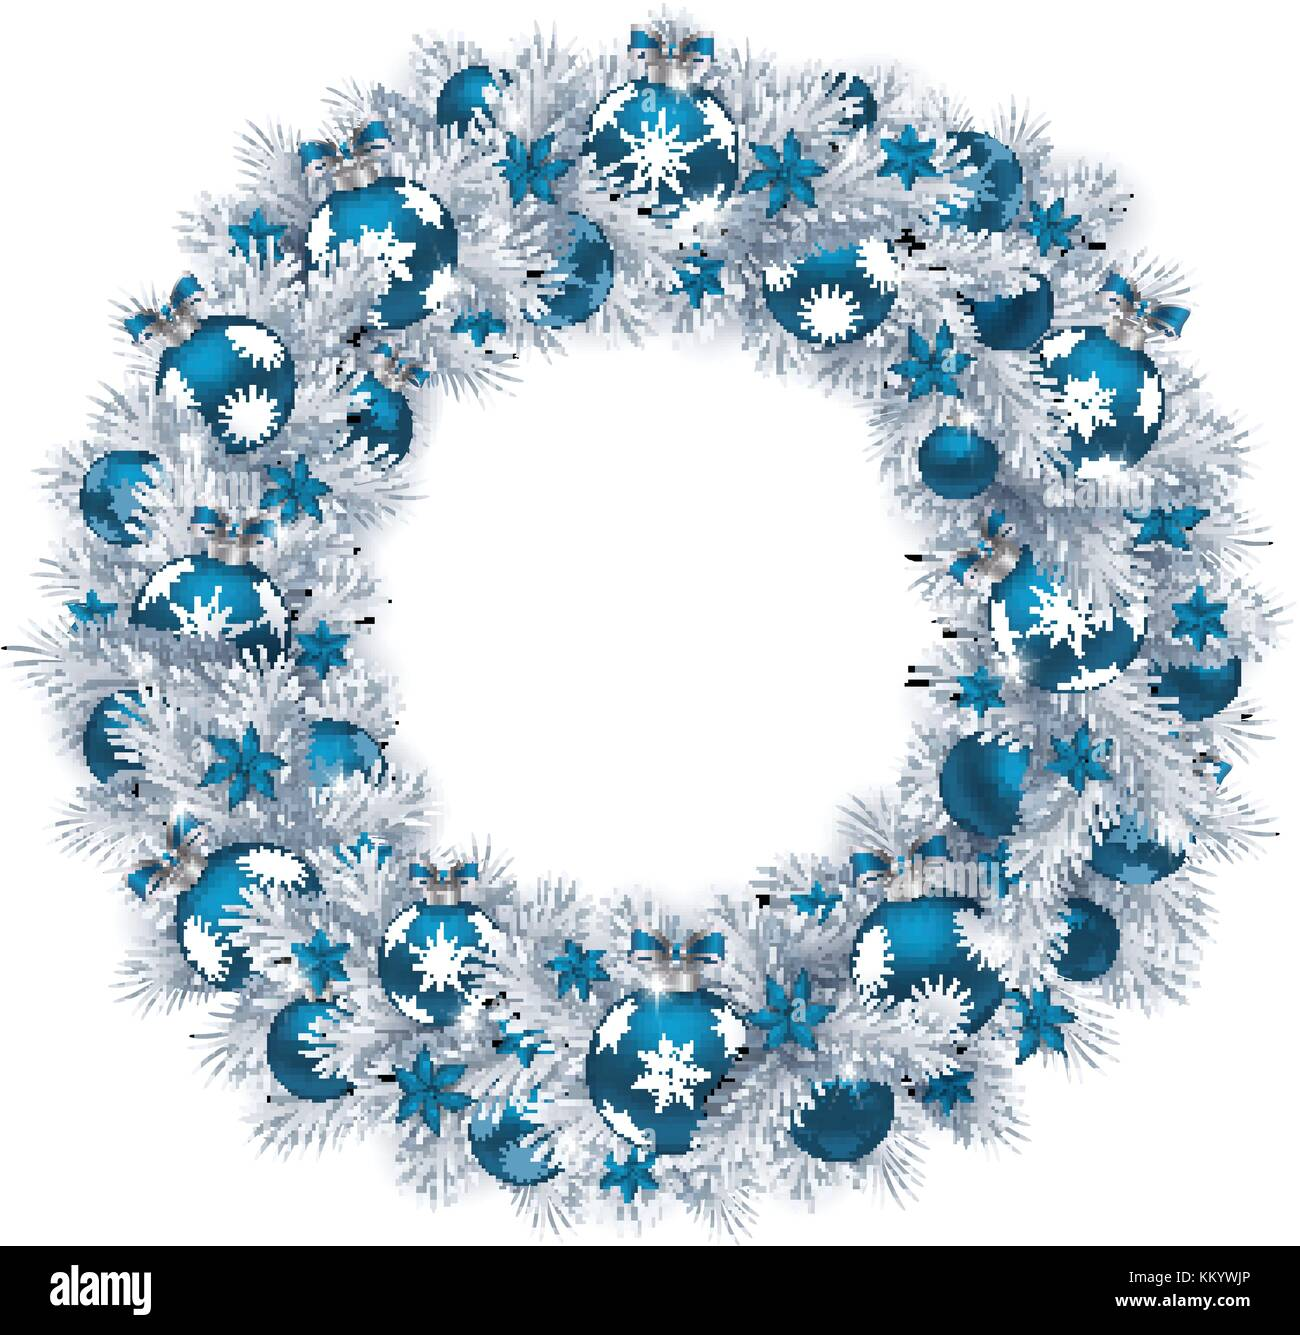 christmas wreath with silver colour fir branches blue balls and decorations isolated on white background - Blue Christmas Wreath